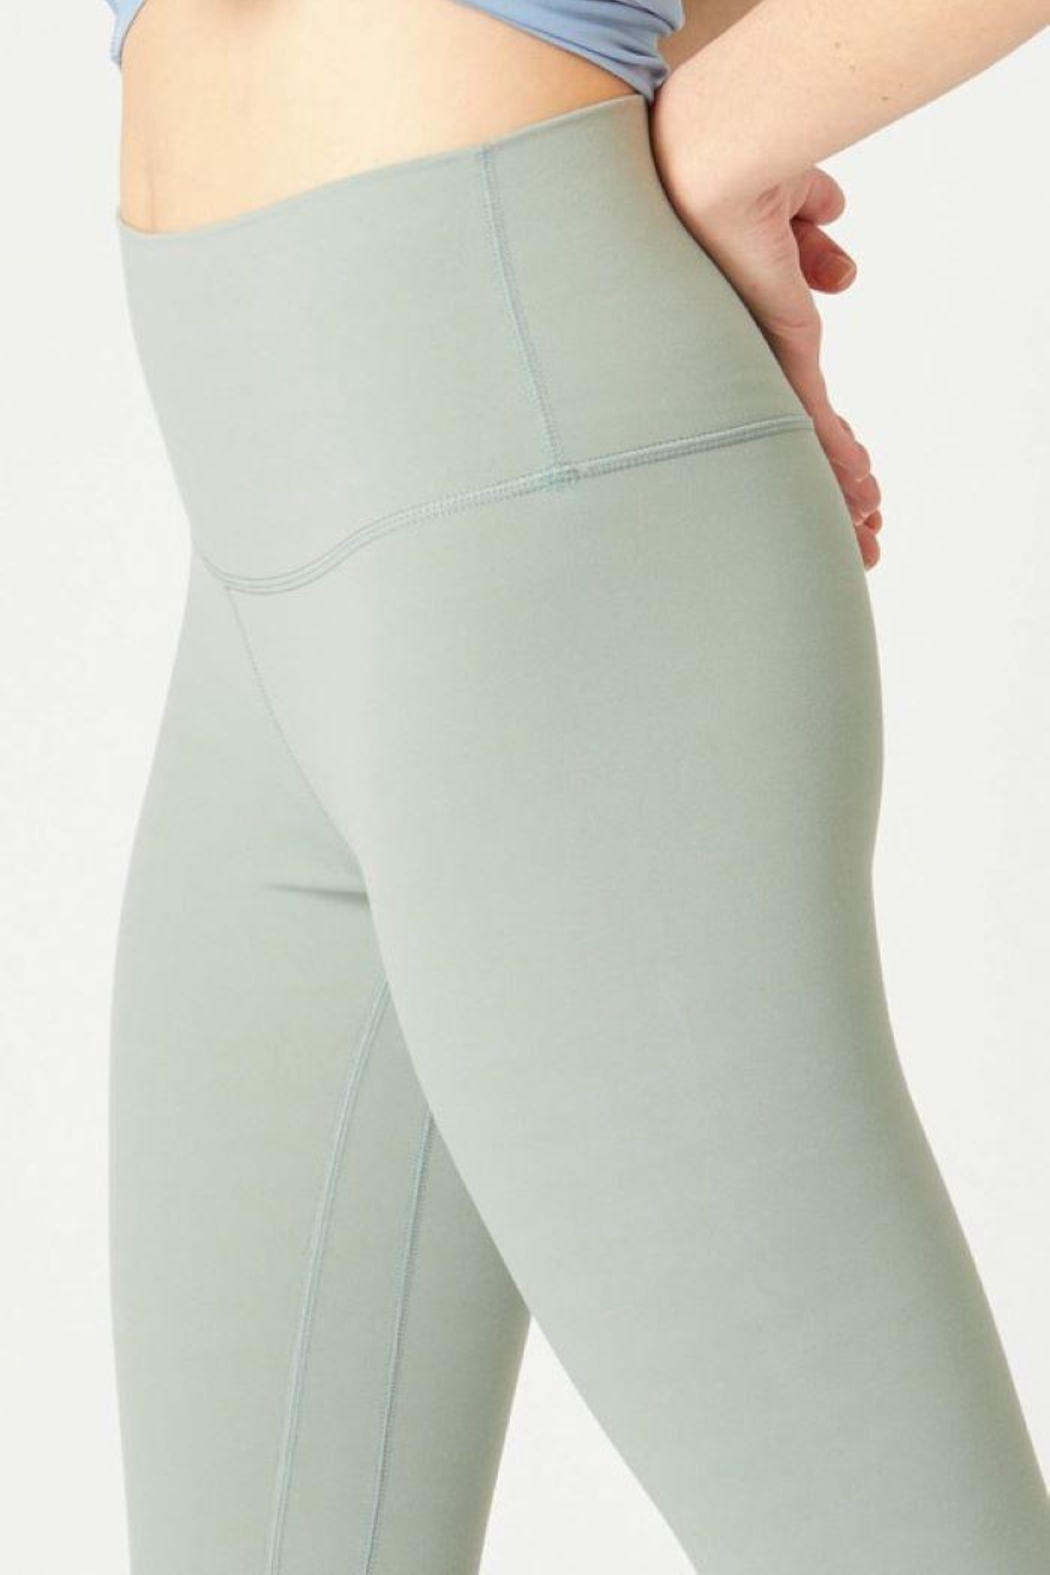 Lovetree High Waist Yoga Pants - Front Cropped Image